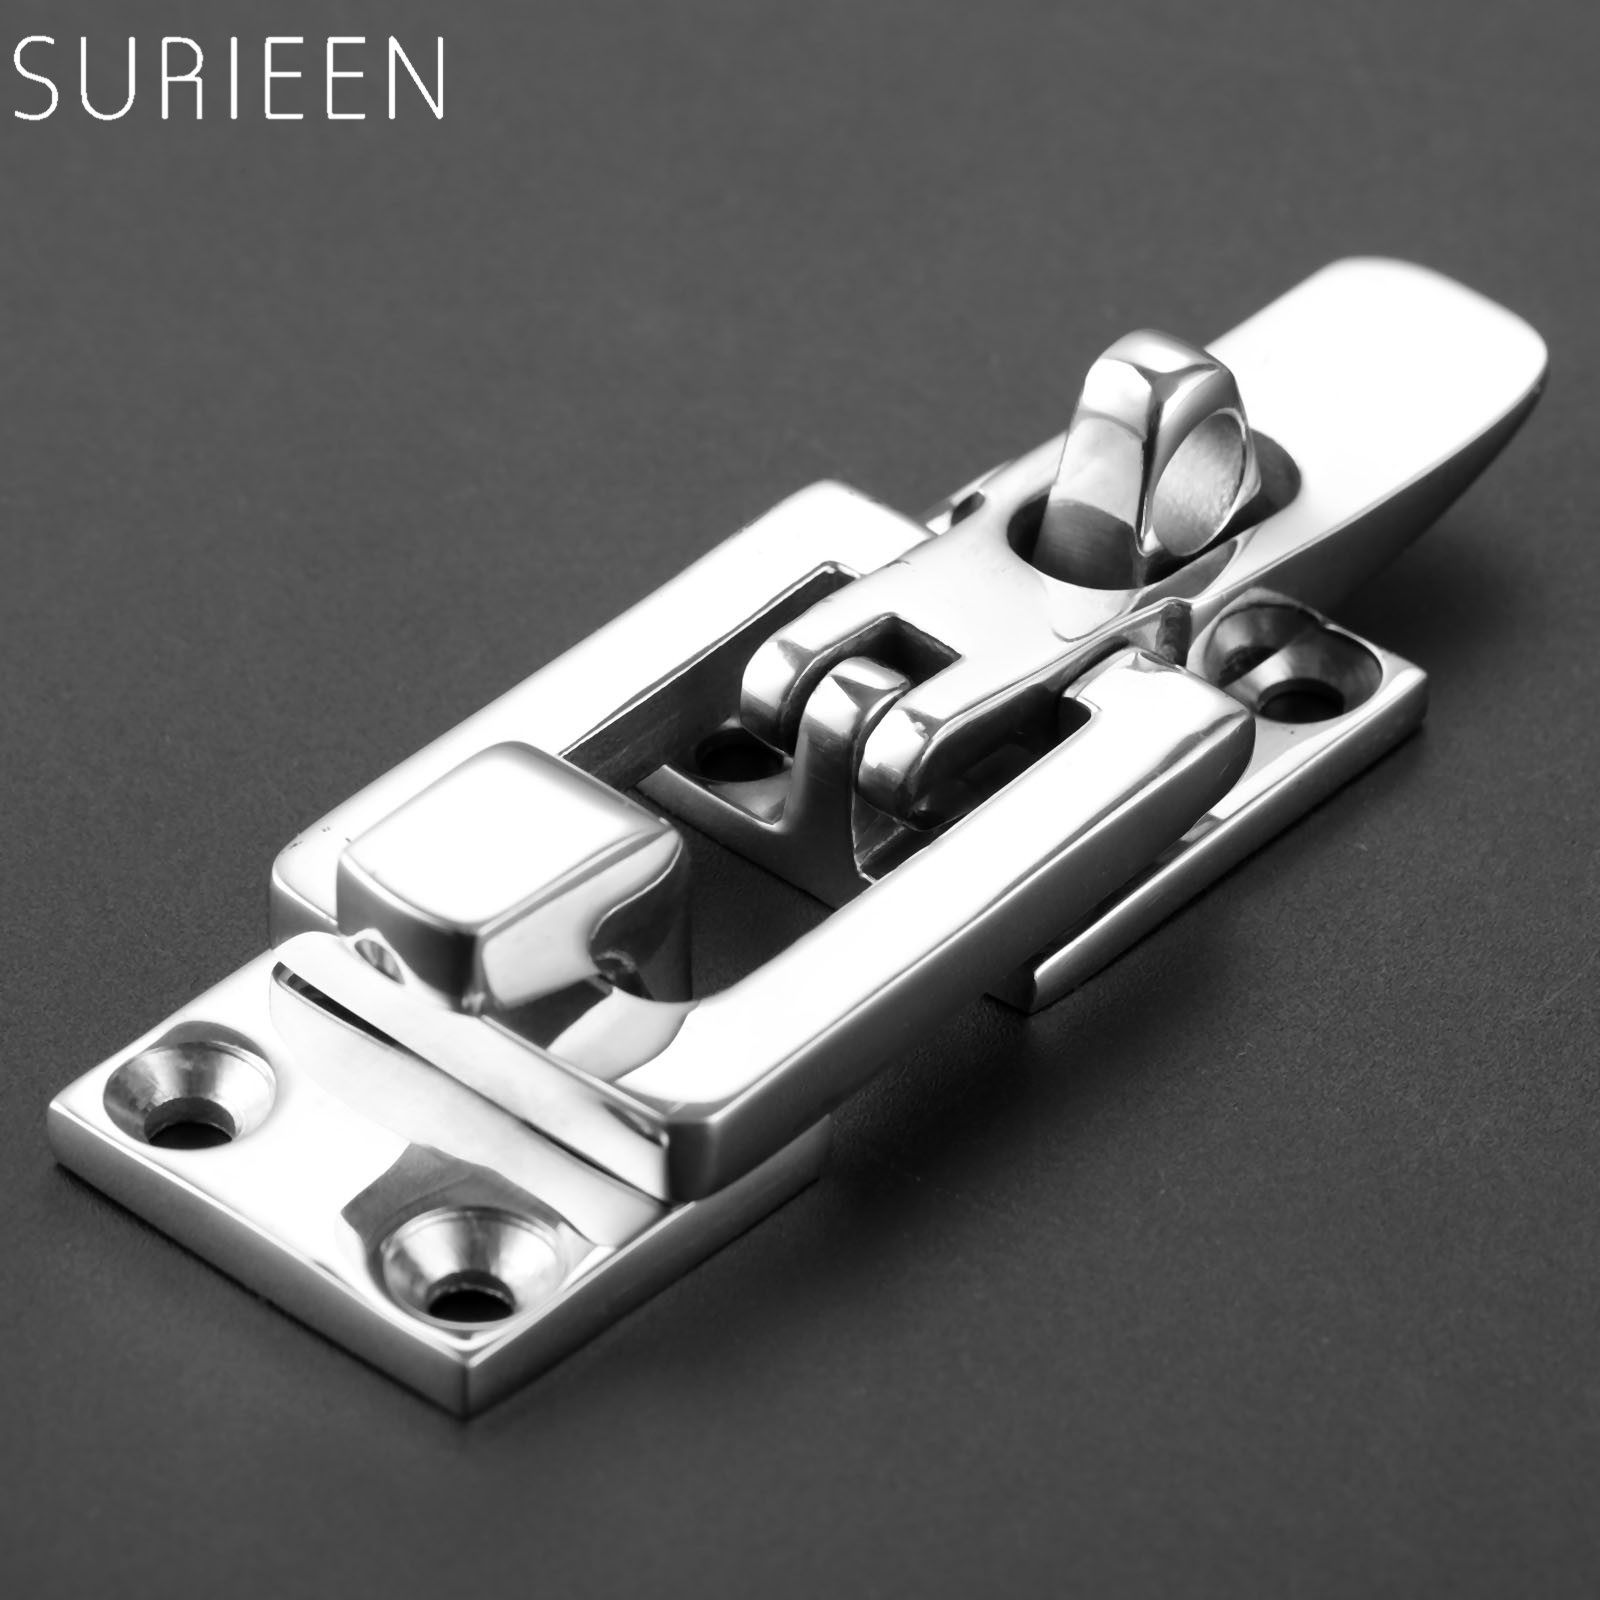 SURIEEN 1Pc Marine Boat Stainless Steel Locker Anti-Rattle Latch Fastener Clamp Safety Hasp Catch Lockable Fishing Tackle Carp